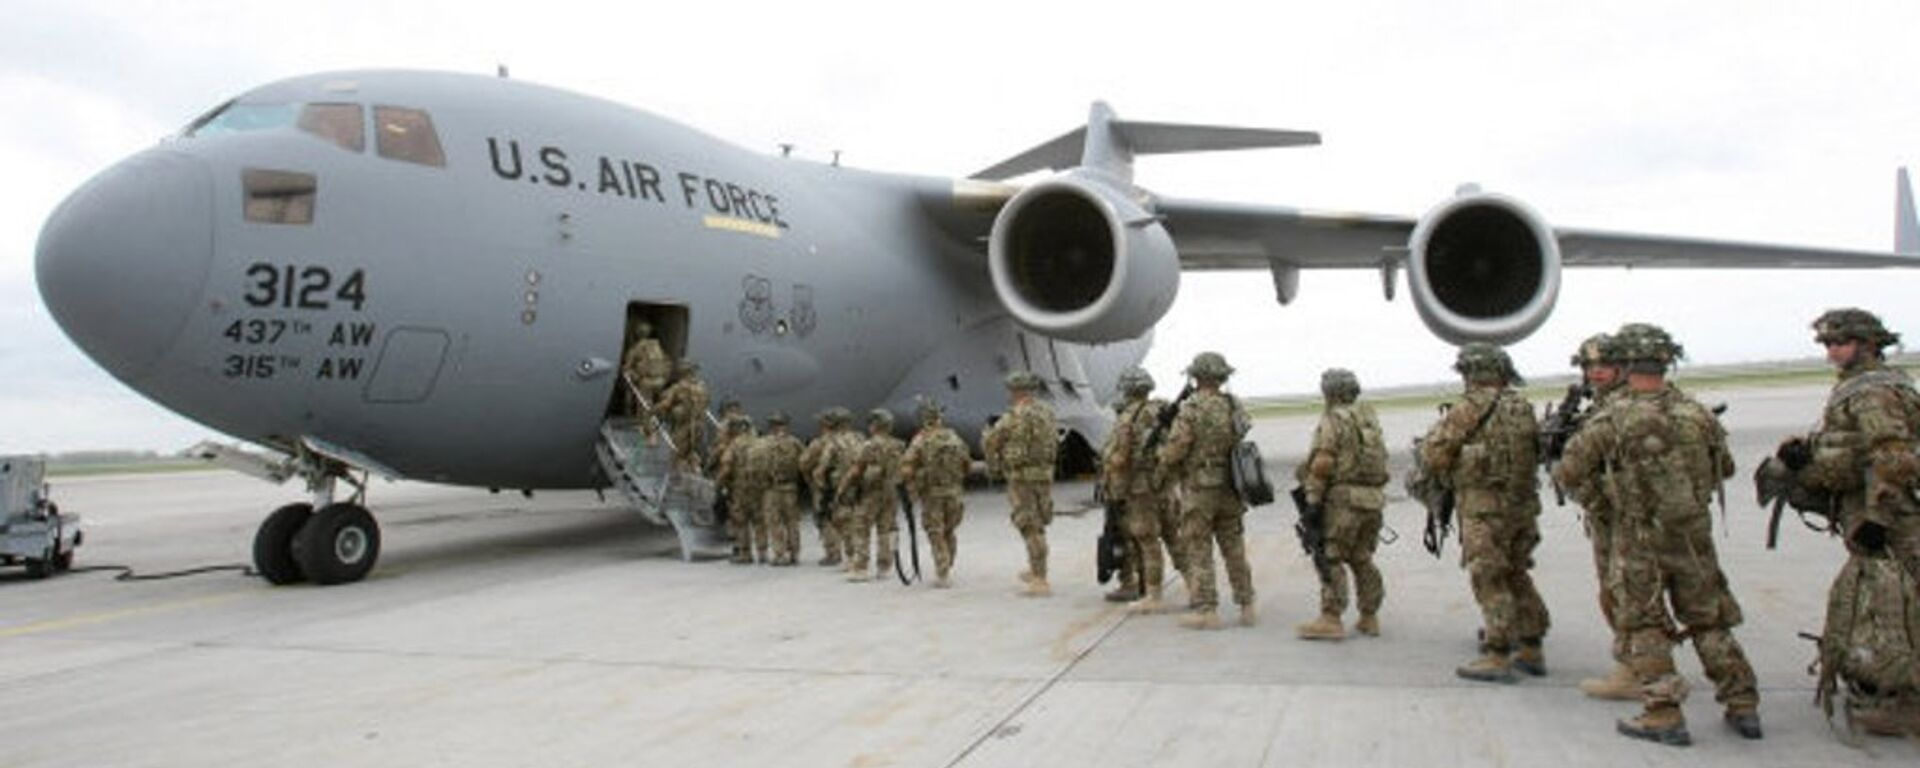 American servicemen prepare to board a military aircraft bound for Afghanistan in Manas airport in Kyrgyzstan in 2011. - Sputnik Italia, 1920, 19.08.2021